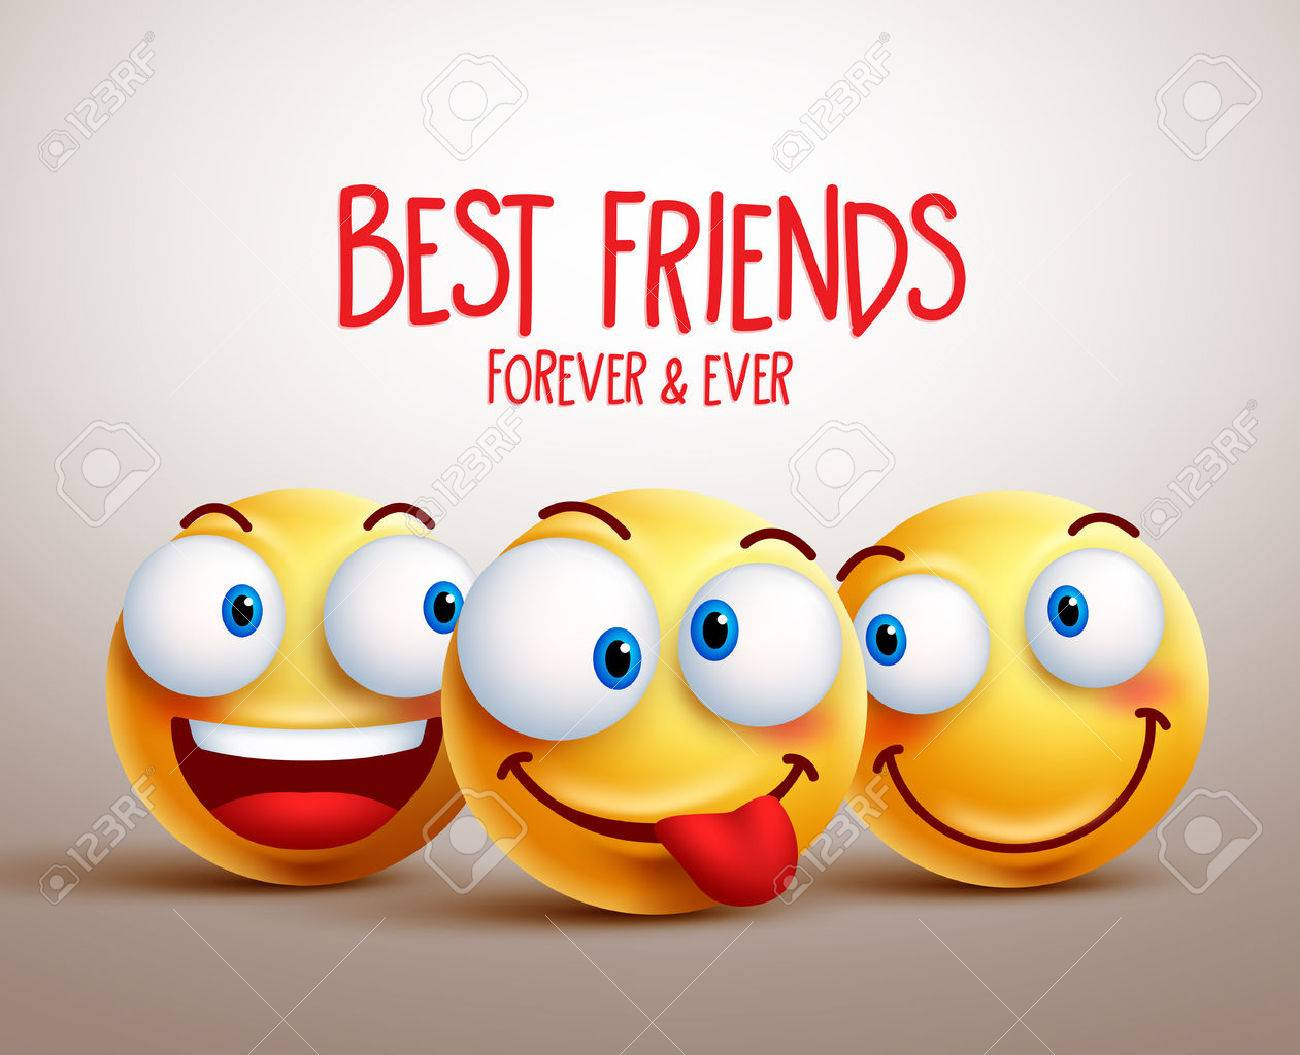 Best Friends Smiley Face Vector Design Concept With Funny Facial